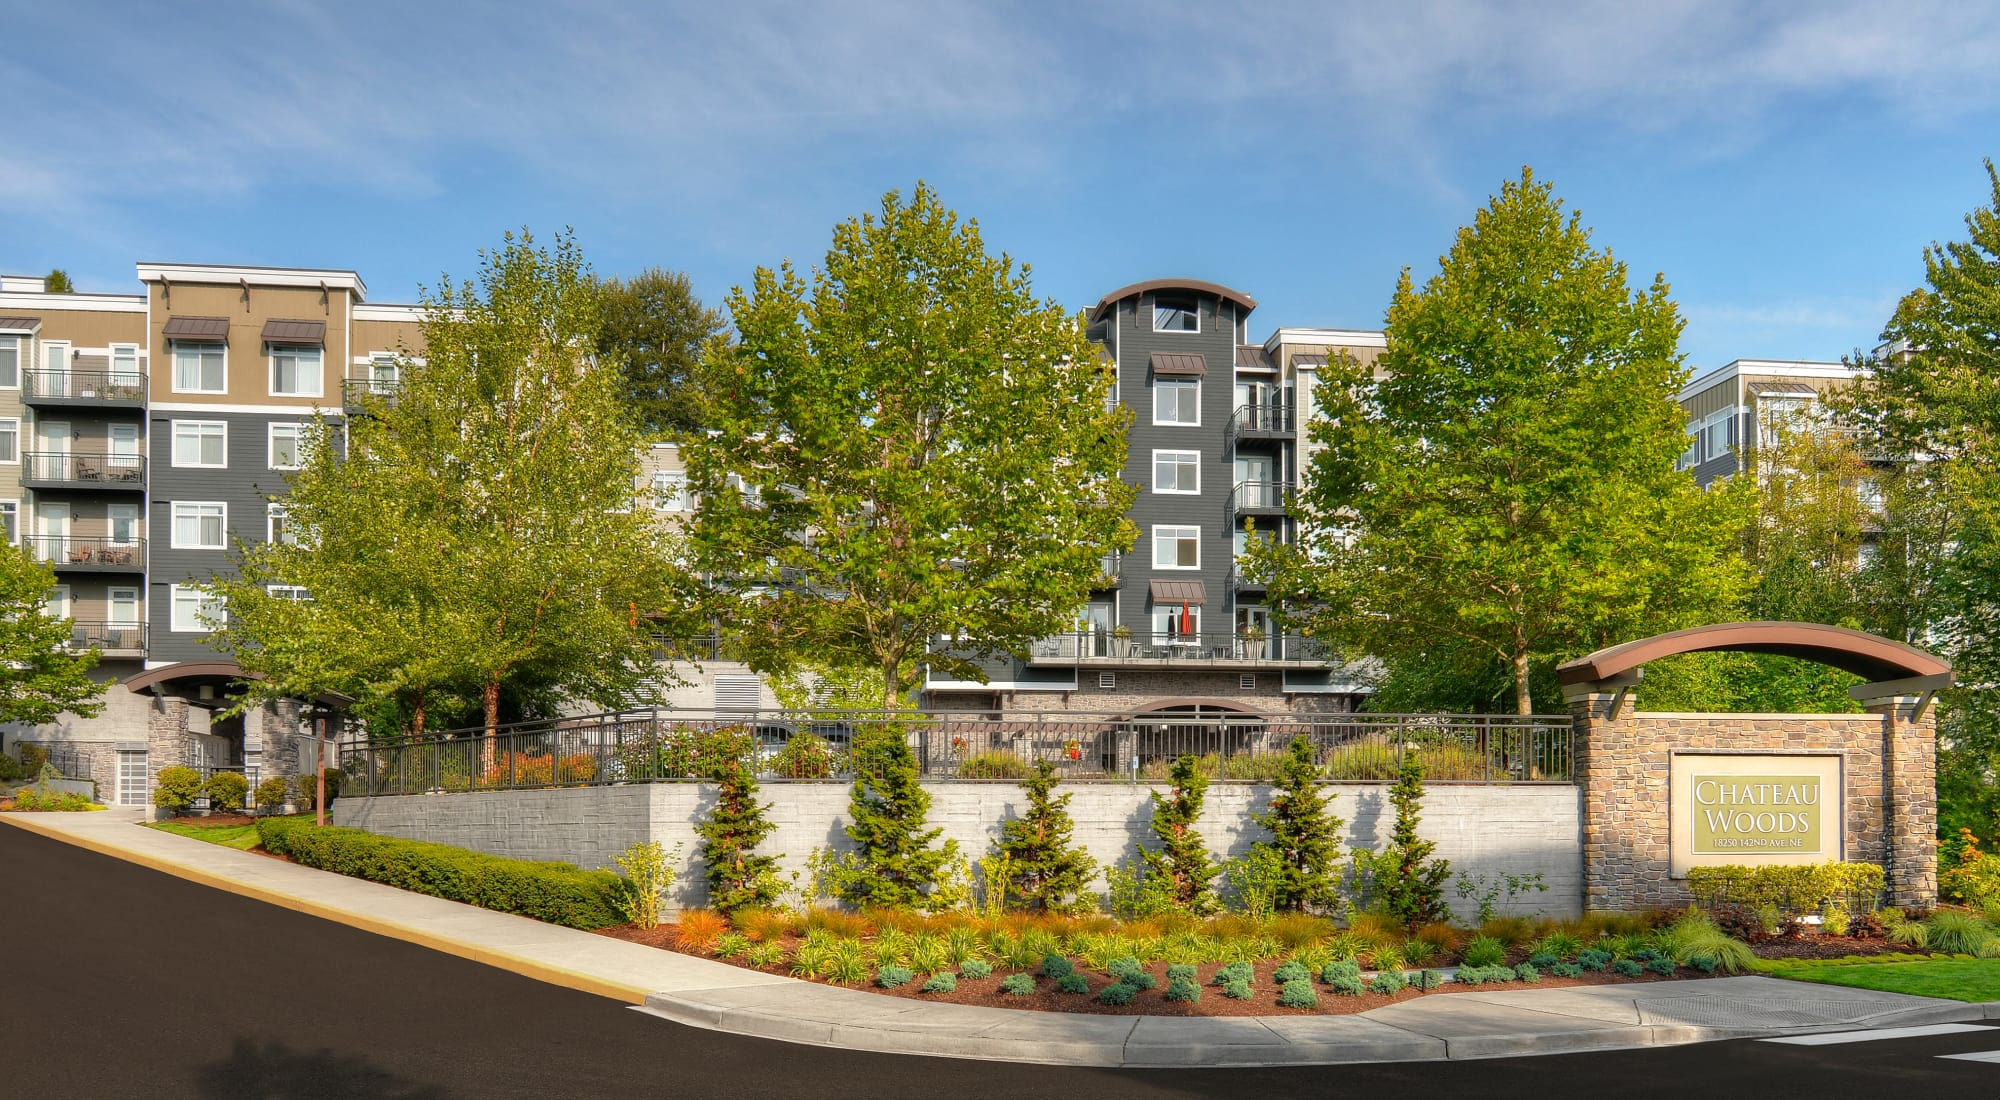 Chateau Woods Apartments for Rent Woodinville, WAin King County